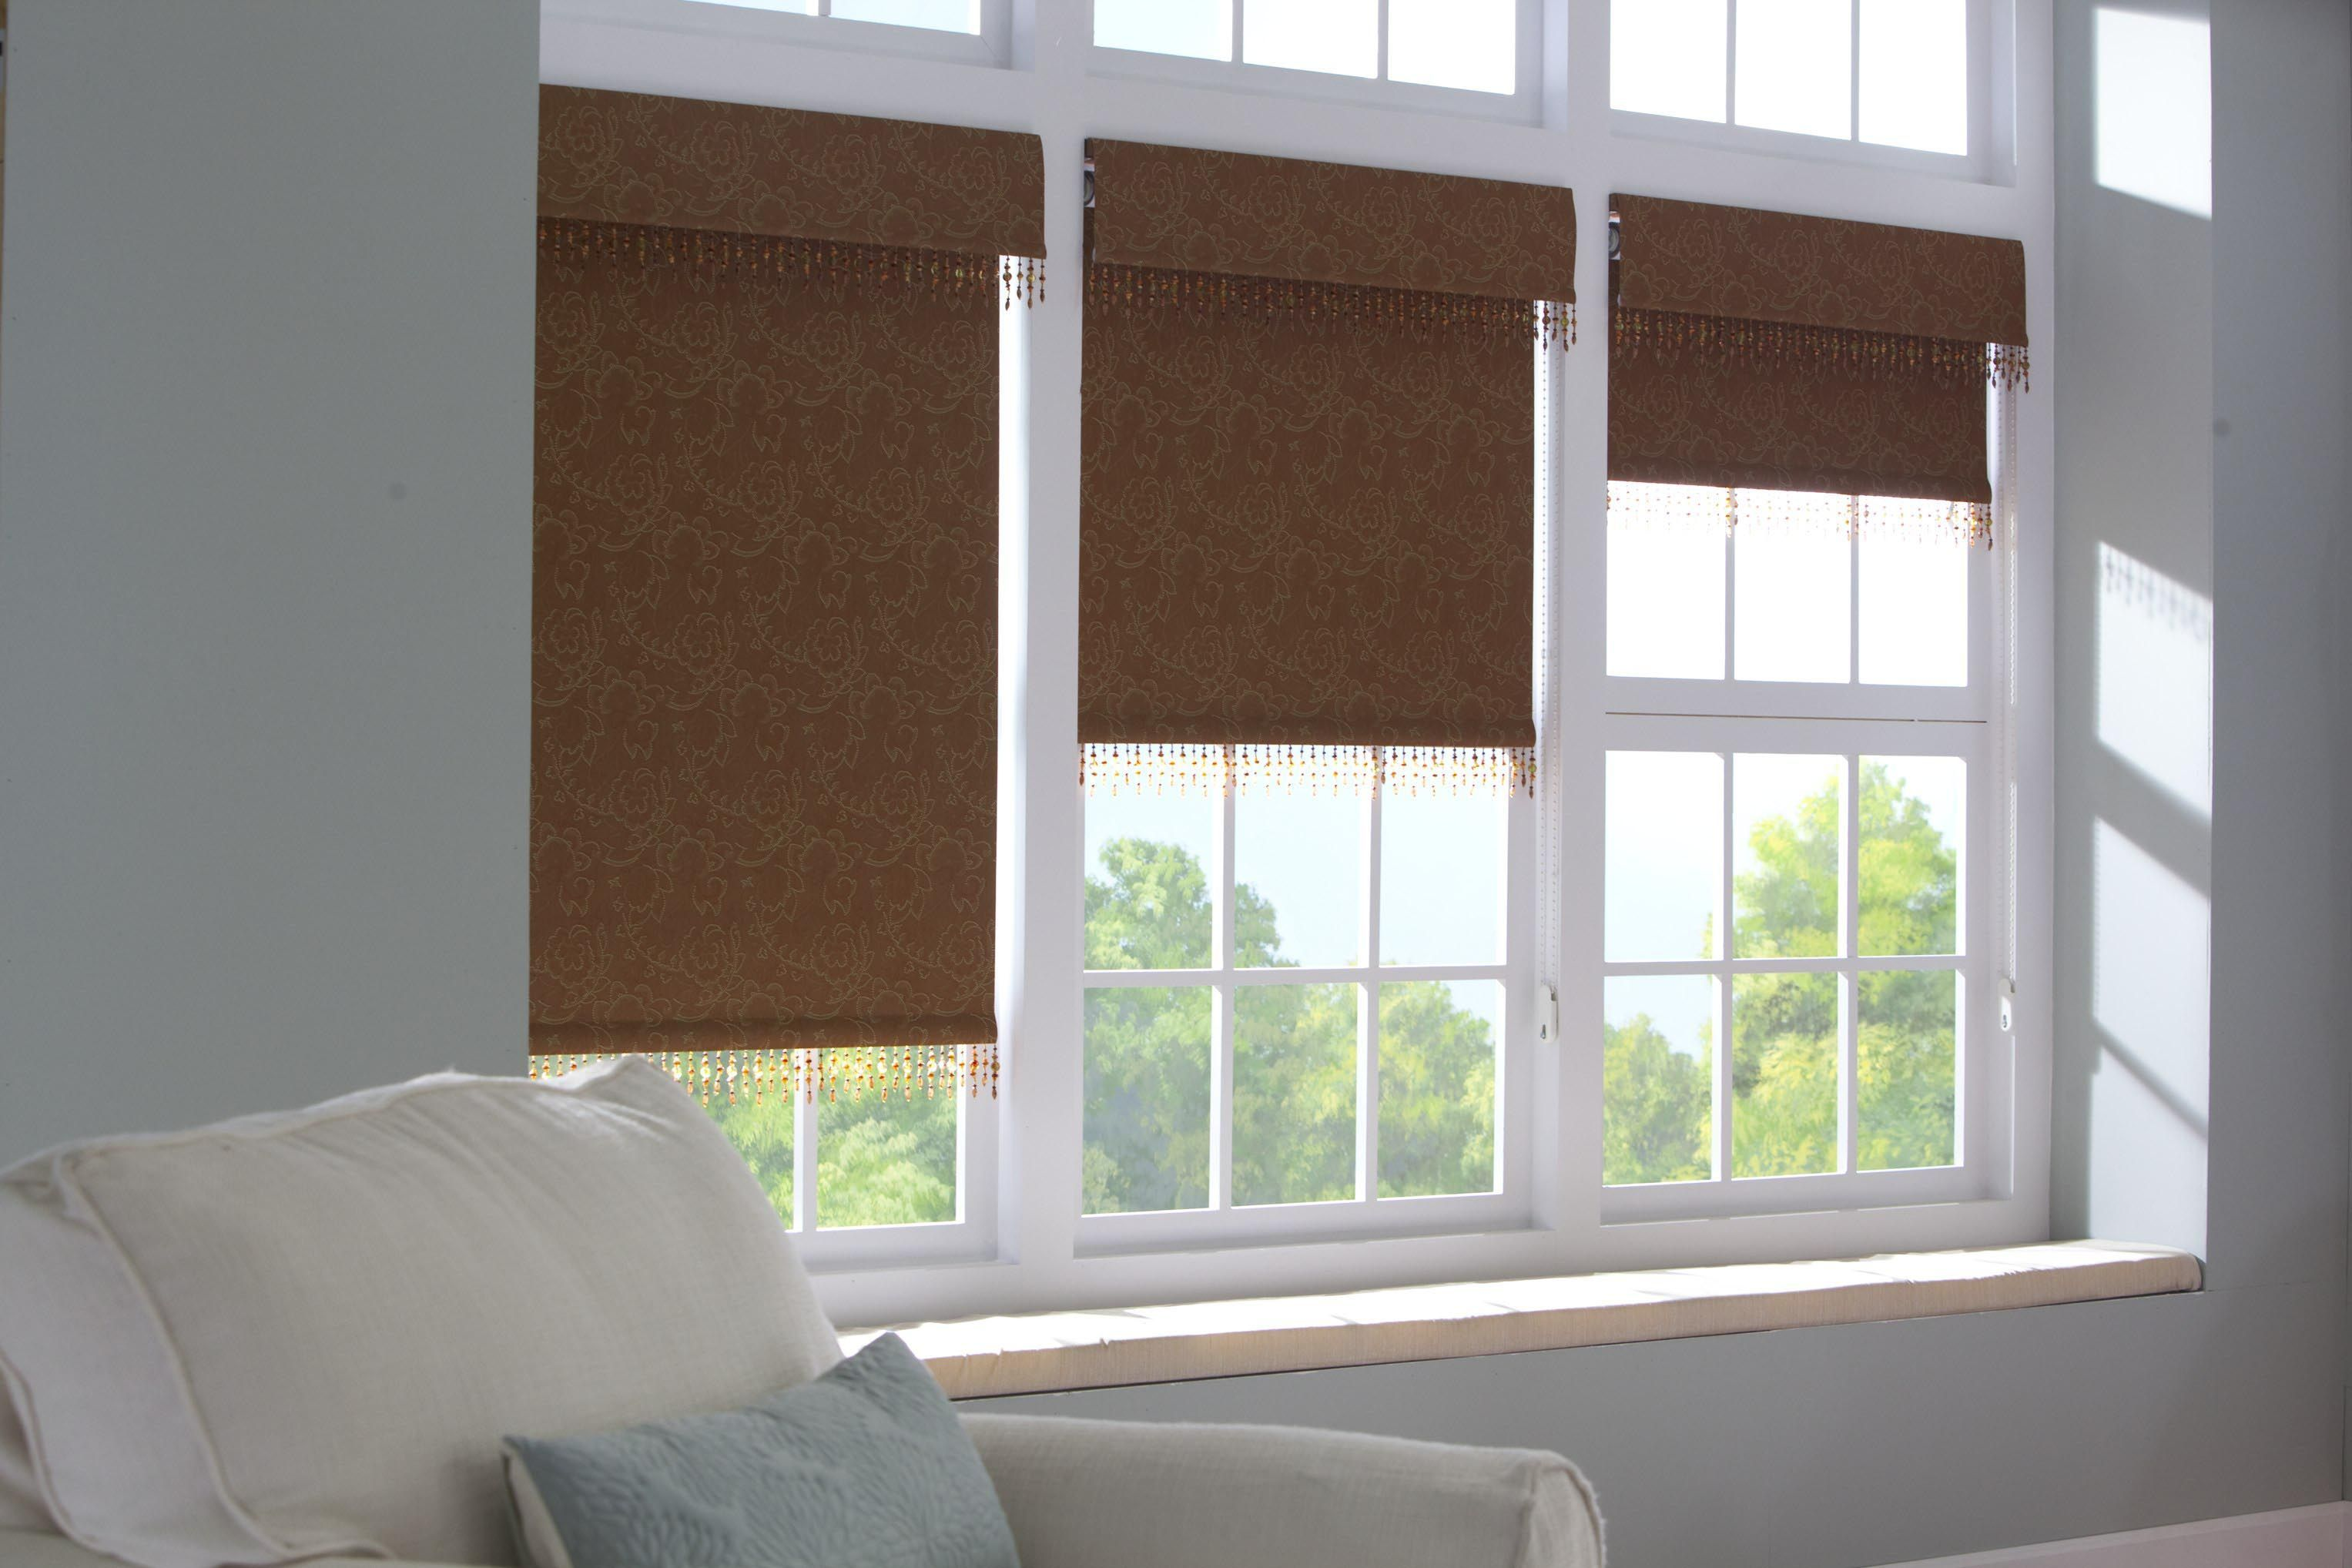 Cordless blinds for windows verticalblindspatterned vertical